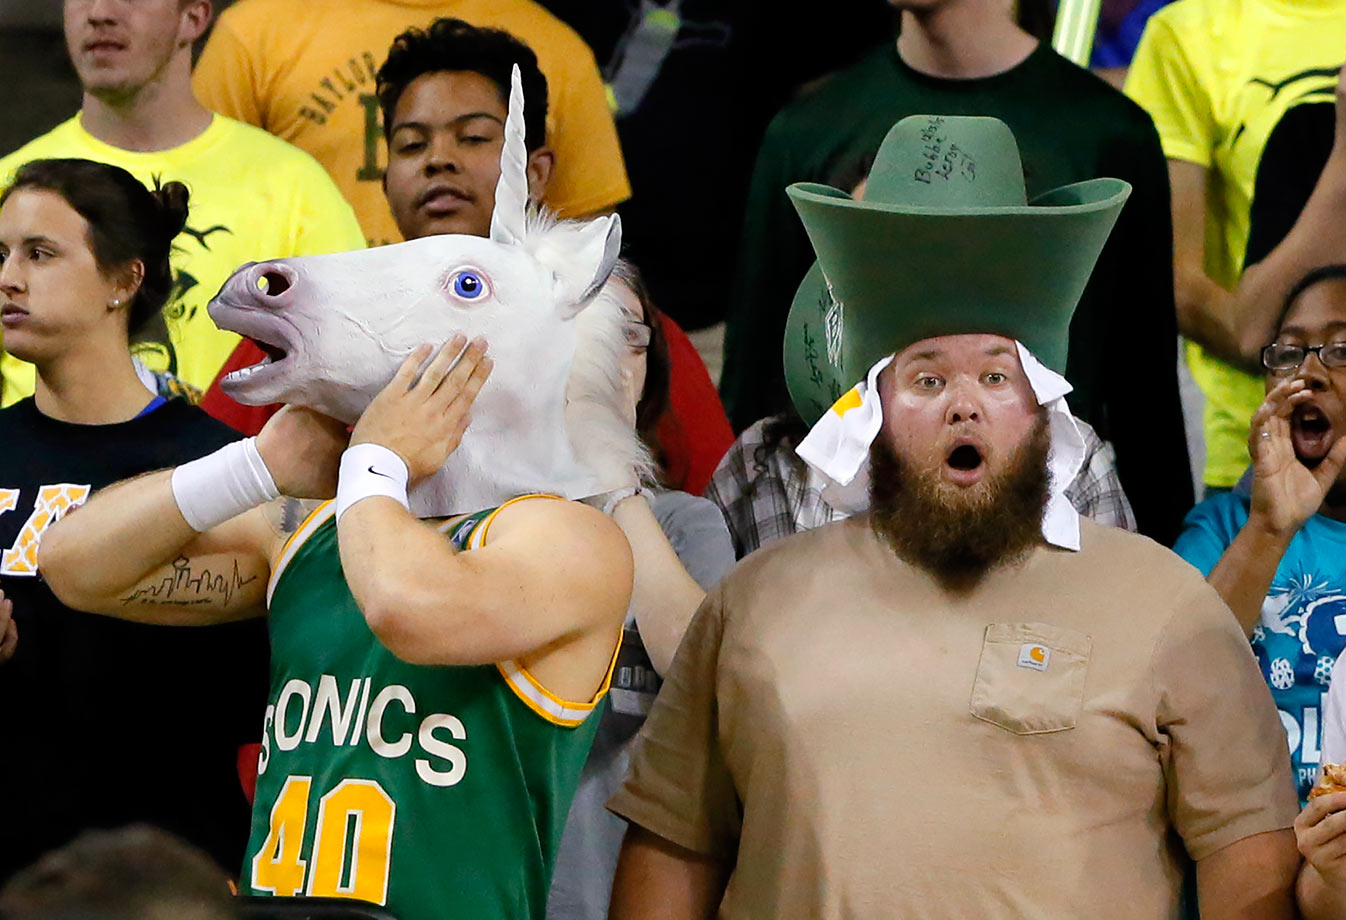 Baylor fans react to a foul called against their team during the second half against Iowa State in Waco, Texas.